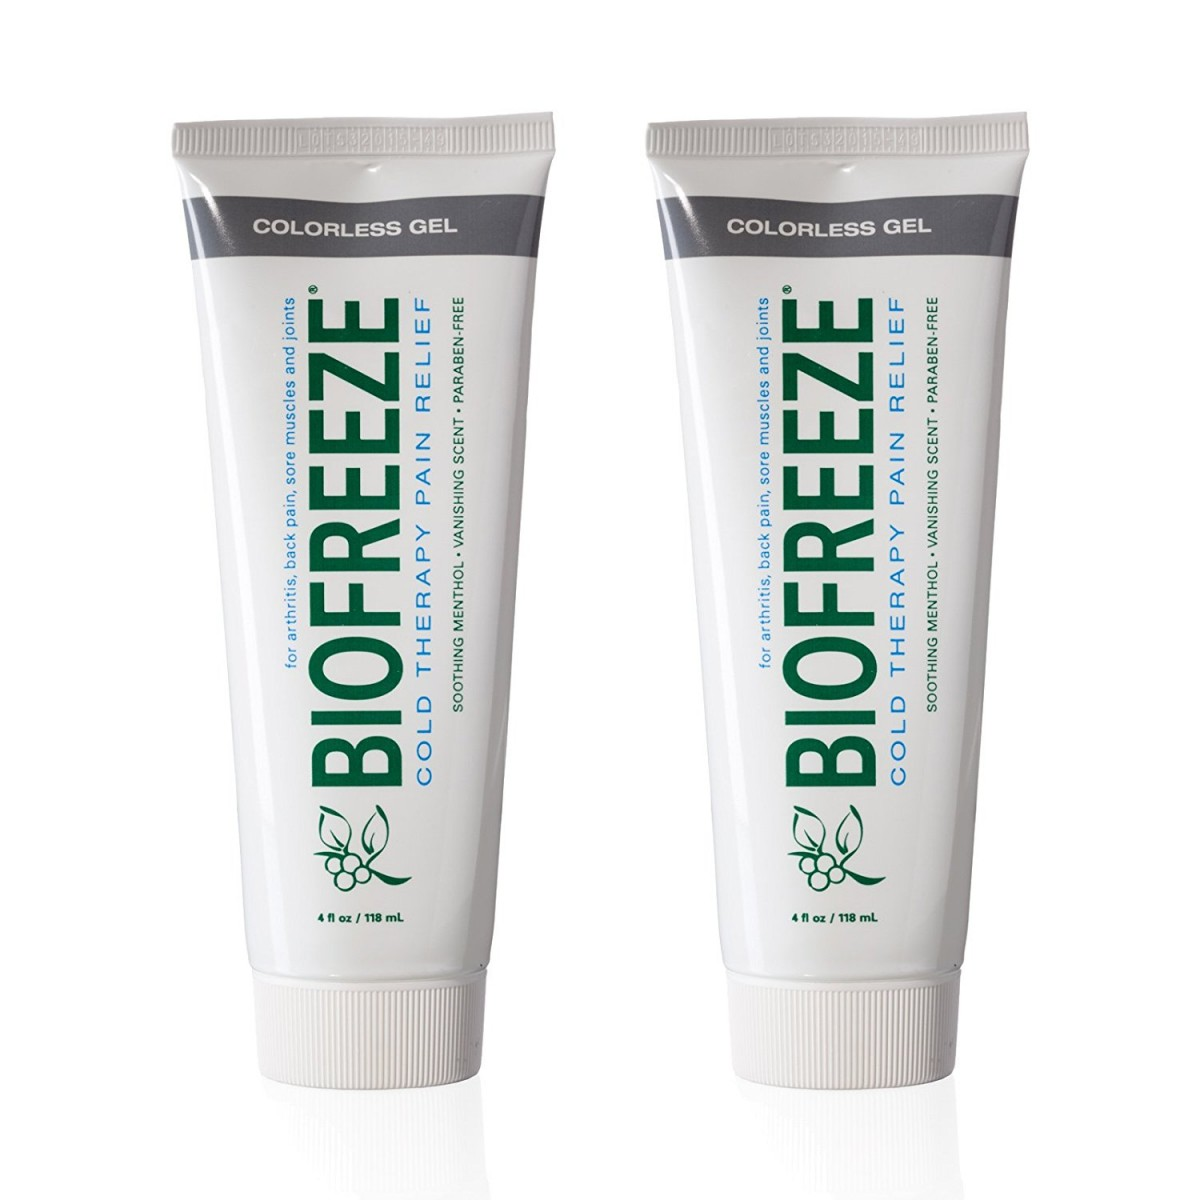 Biofreeze Pain Relief Gel for Arthritis, 4 oz  Cold Topical Analgesic, Fast  Acting Cooling Pain Reliever for Muscle, Joint, and Back Pain, Works Like